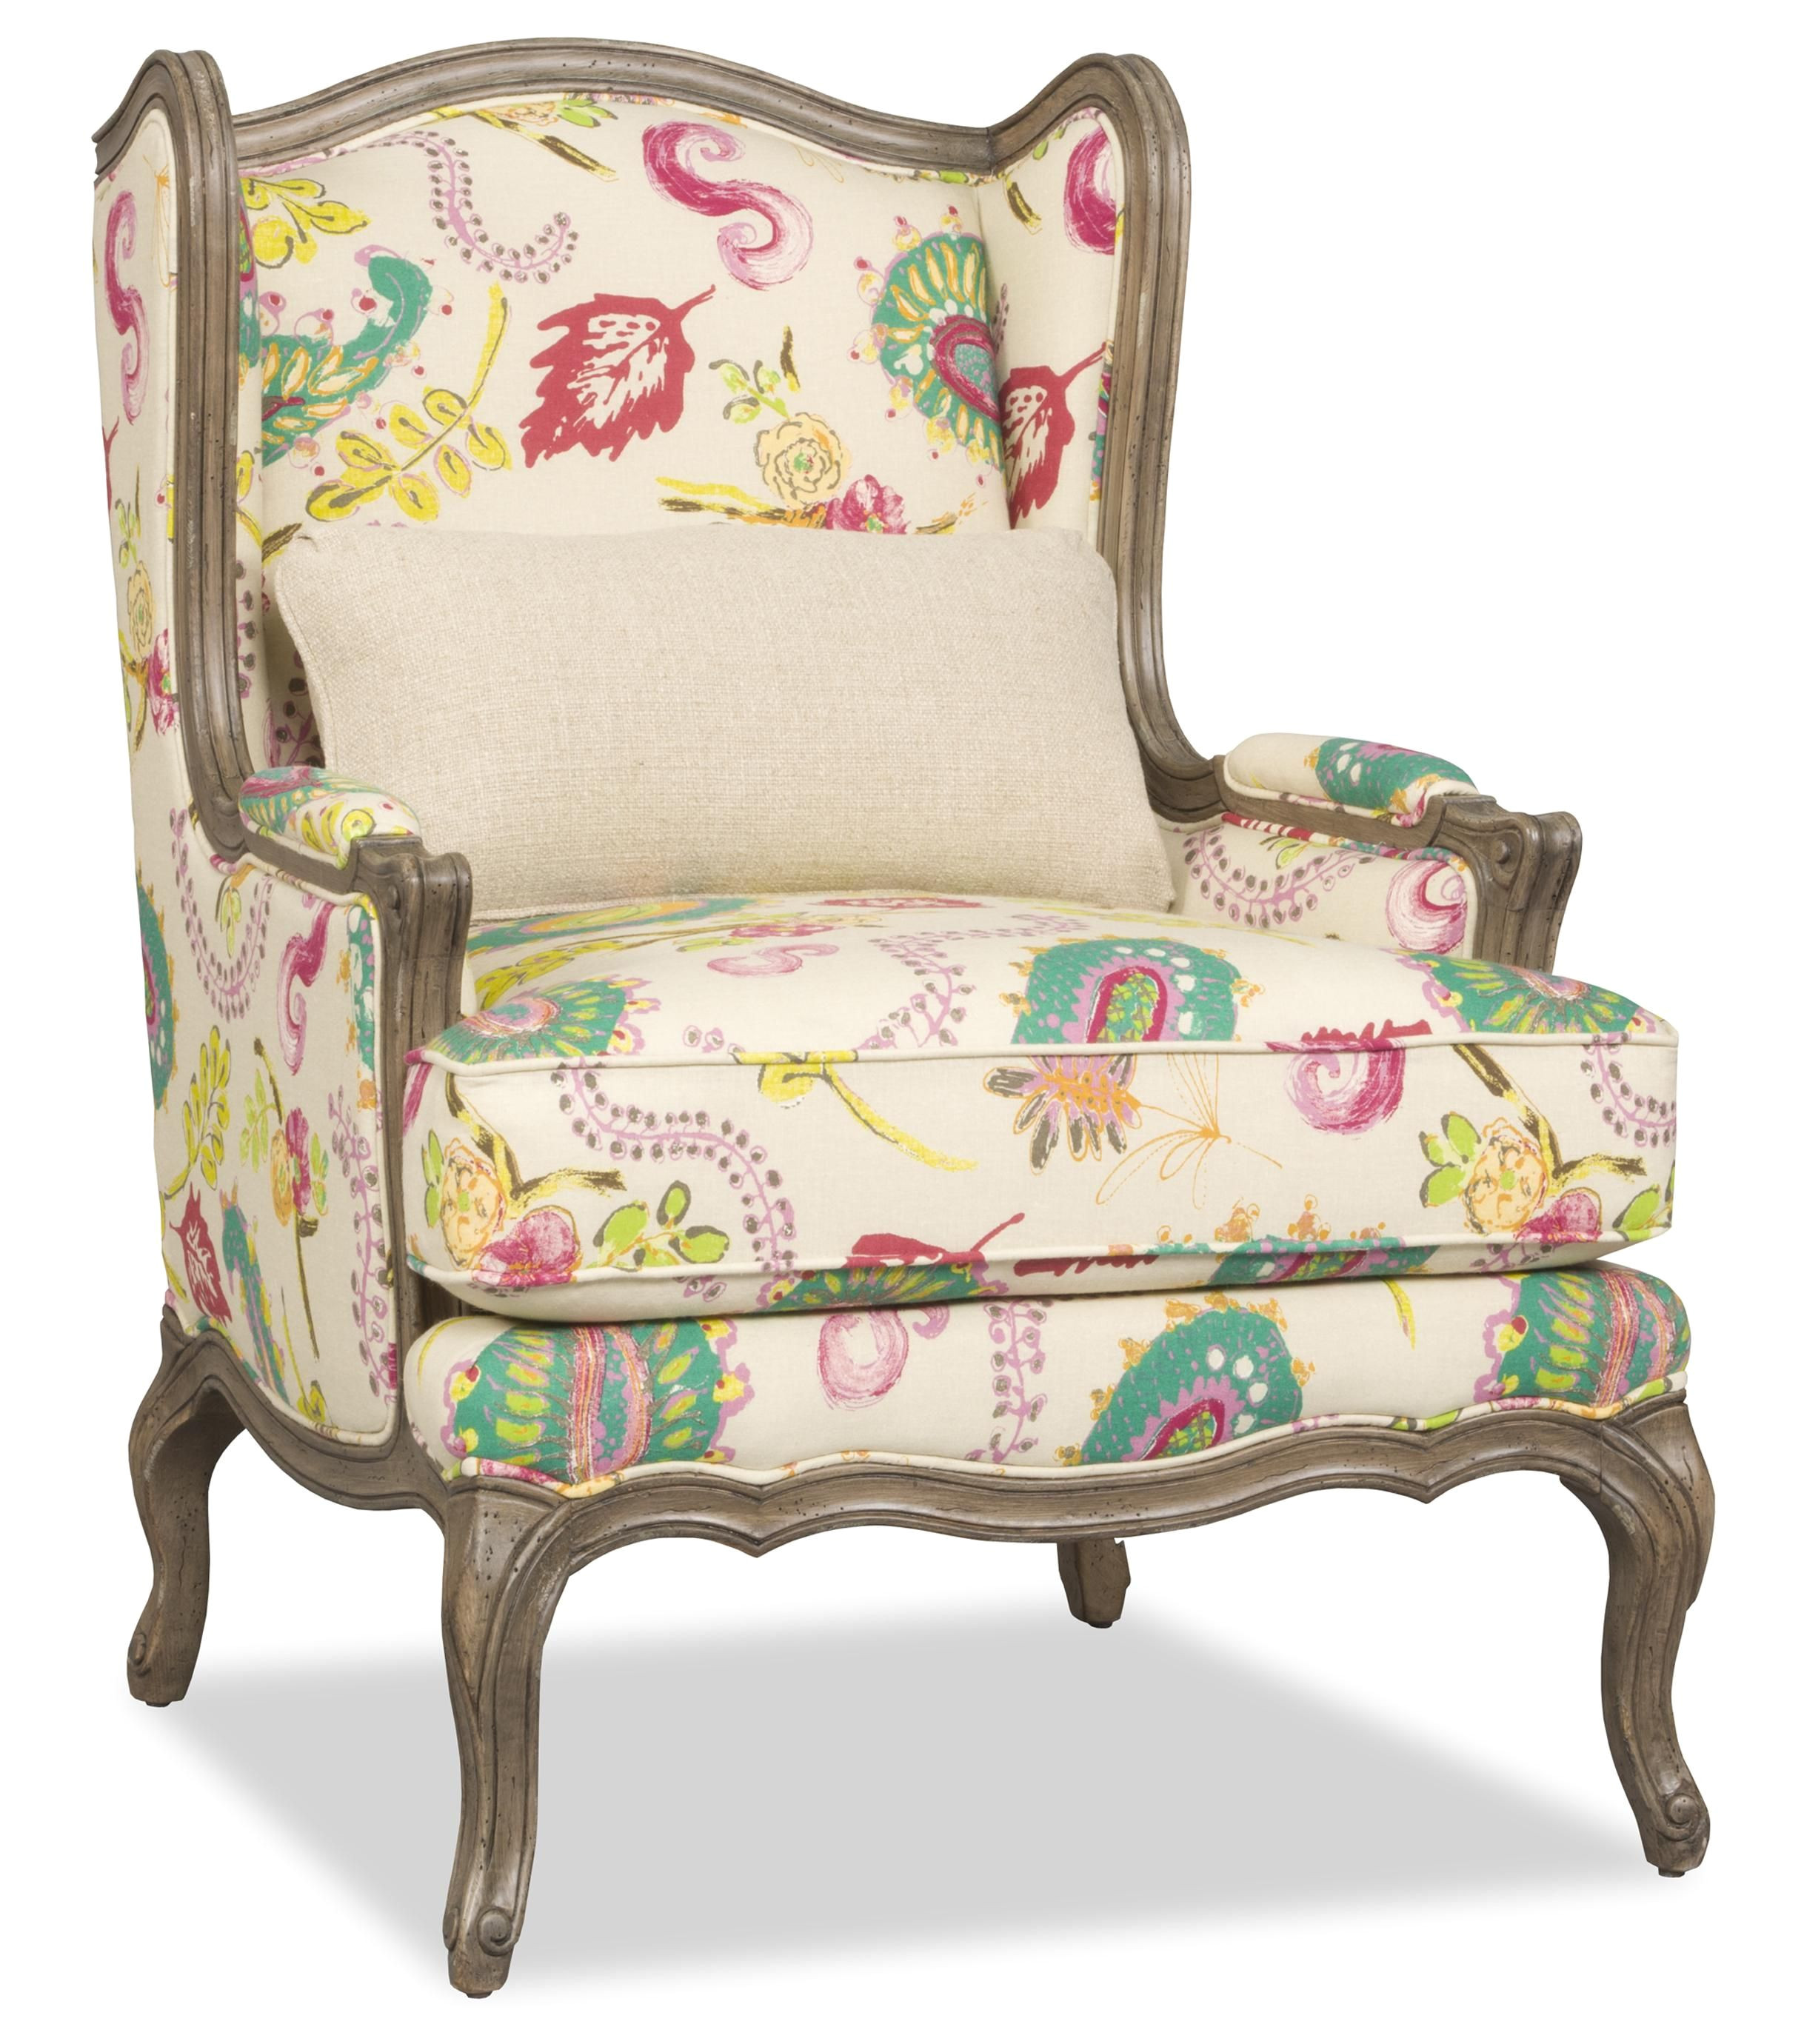 Accent Chairs Under 100 Dollars Kelsea Traditional Exposed Wood Wing Chair by Sam Moore Small